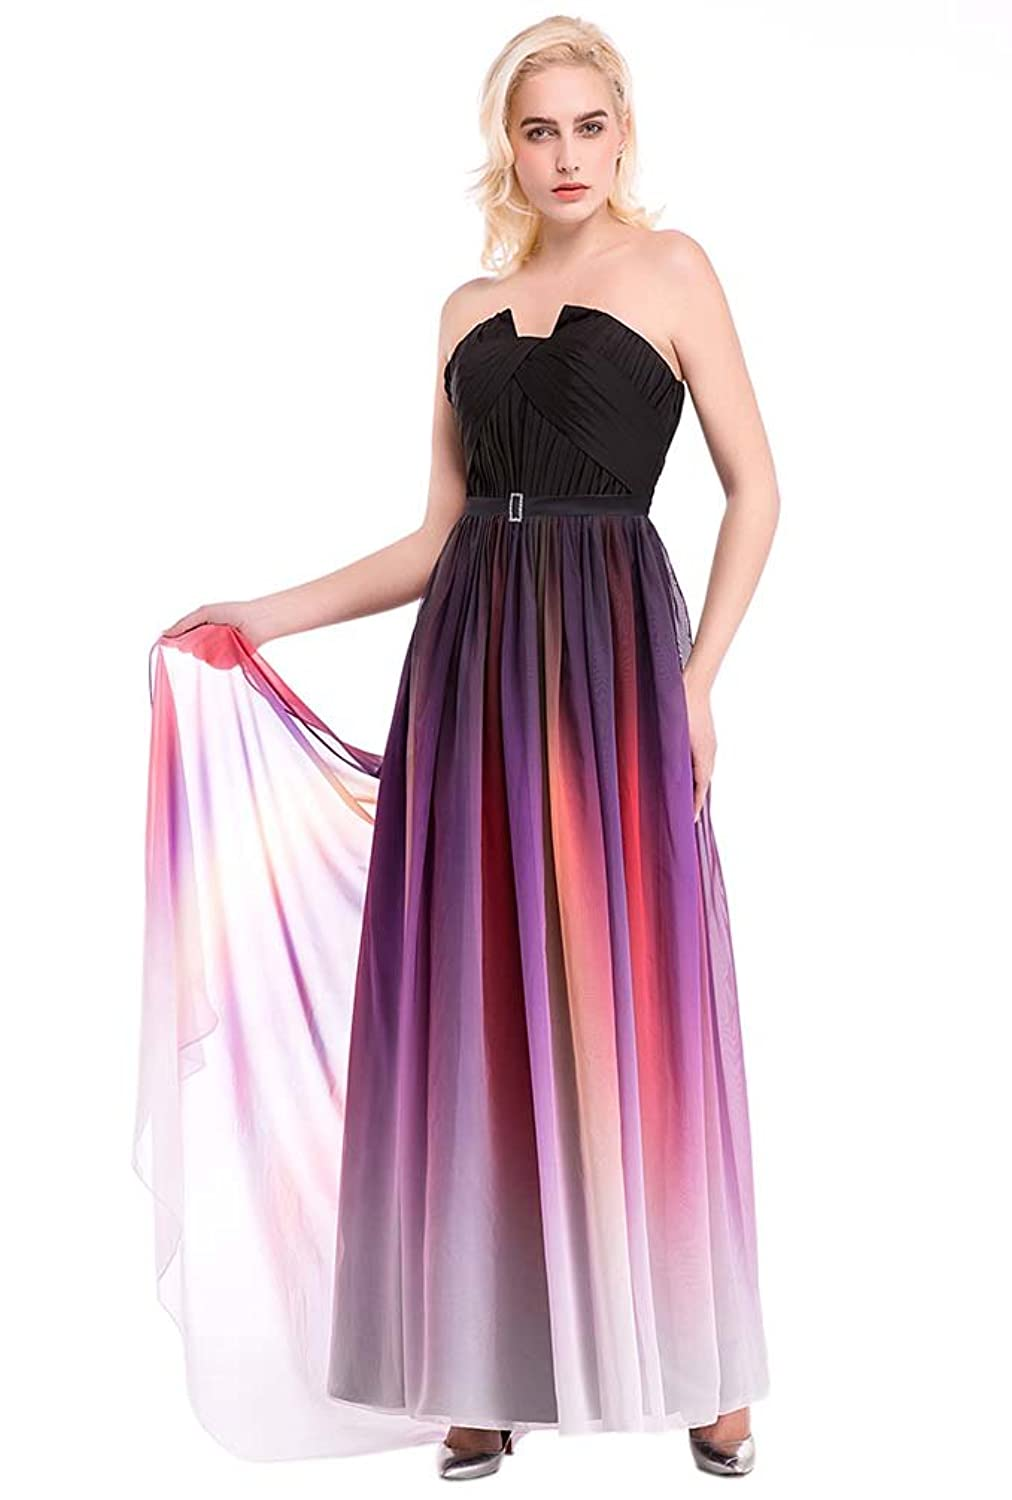 Hot Queen Women's Strapless Sex Colourful Chiffon Long Prom Dresses 2016